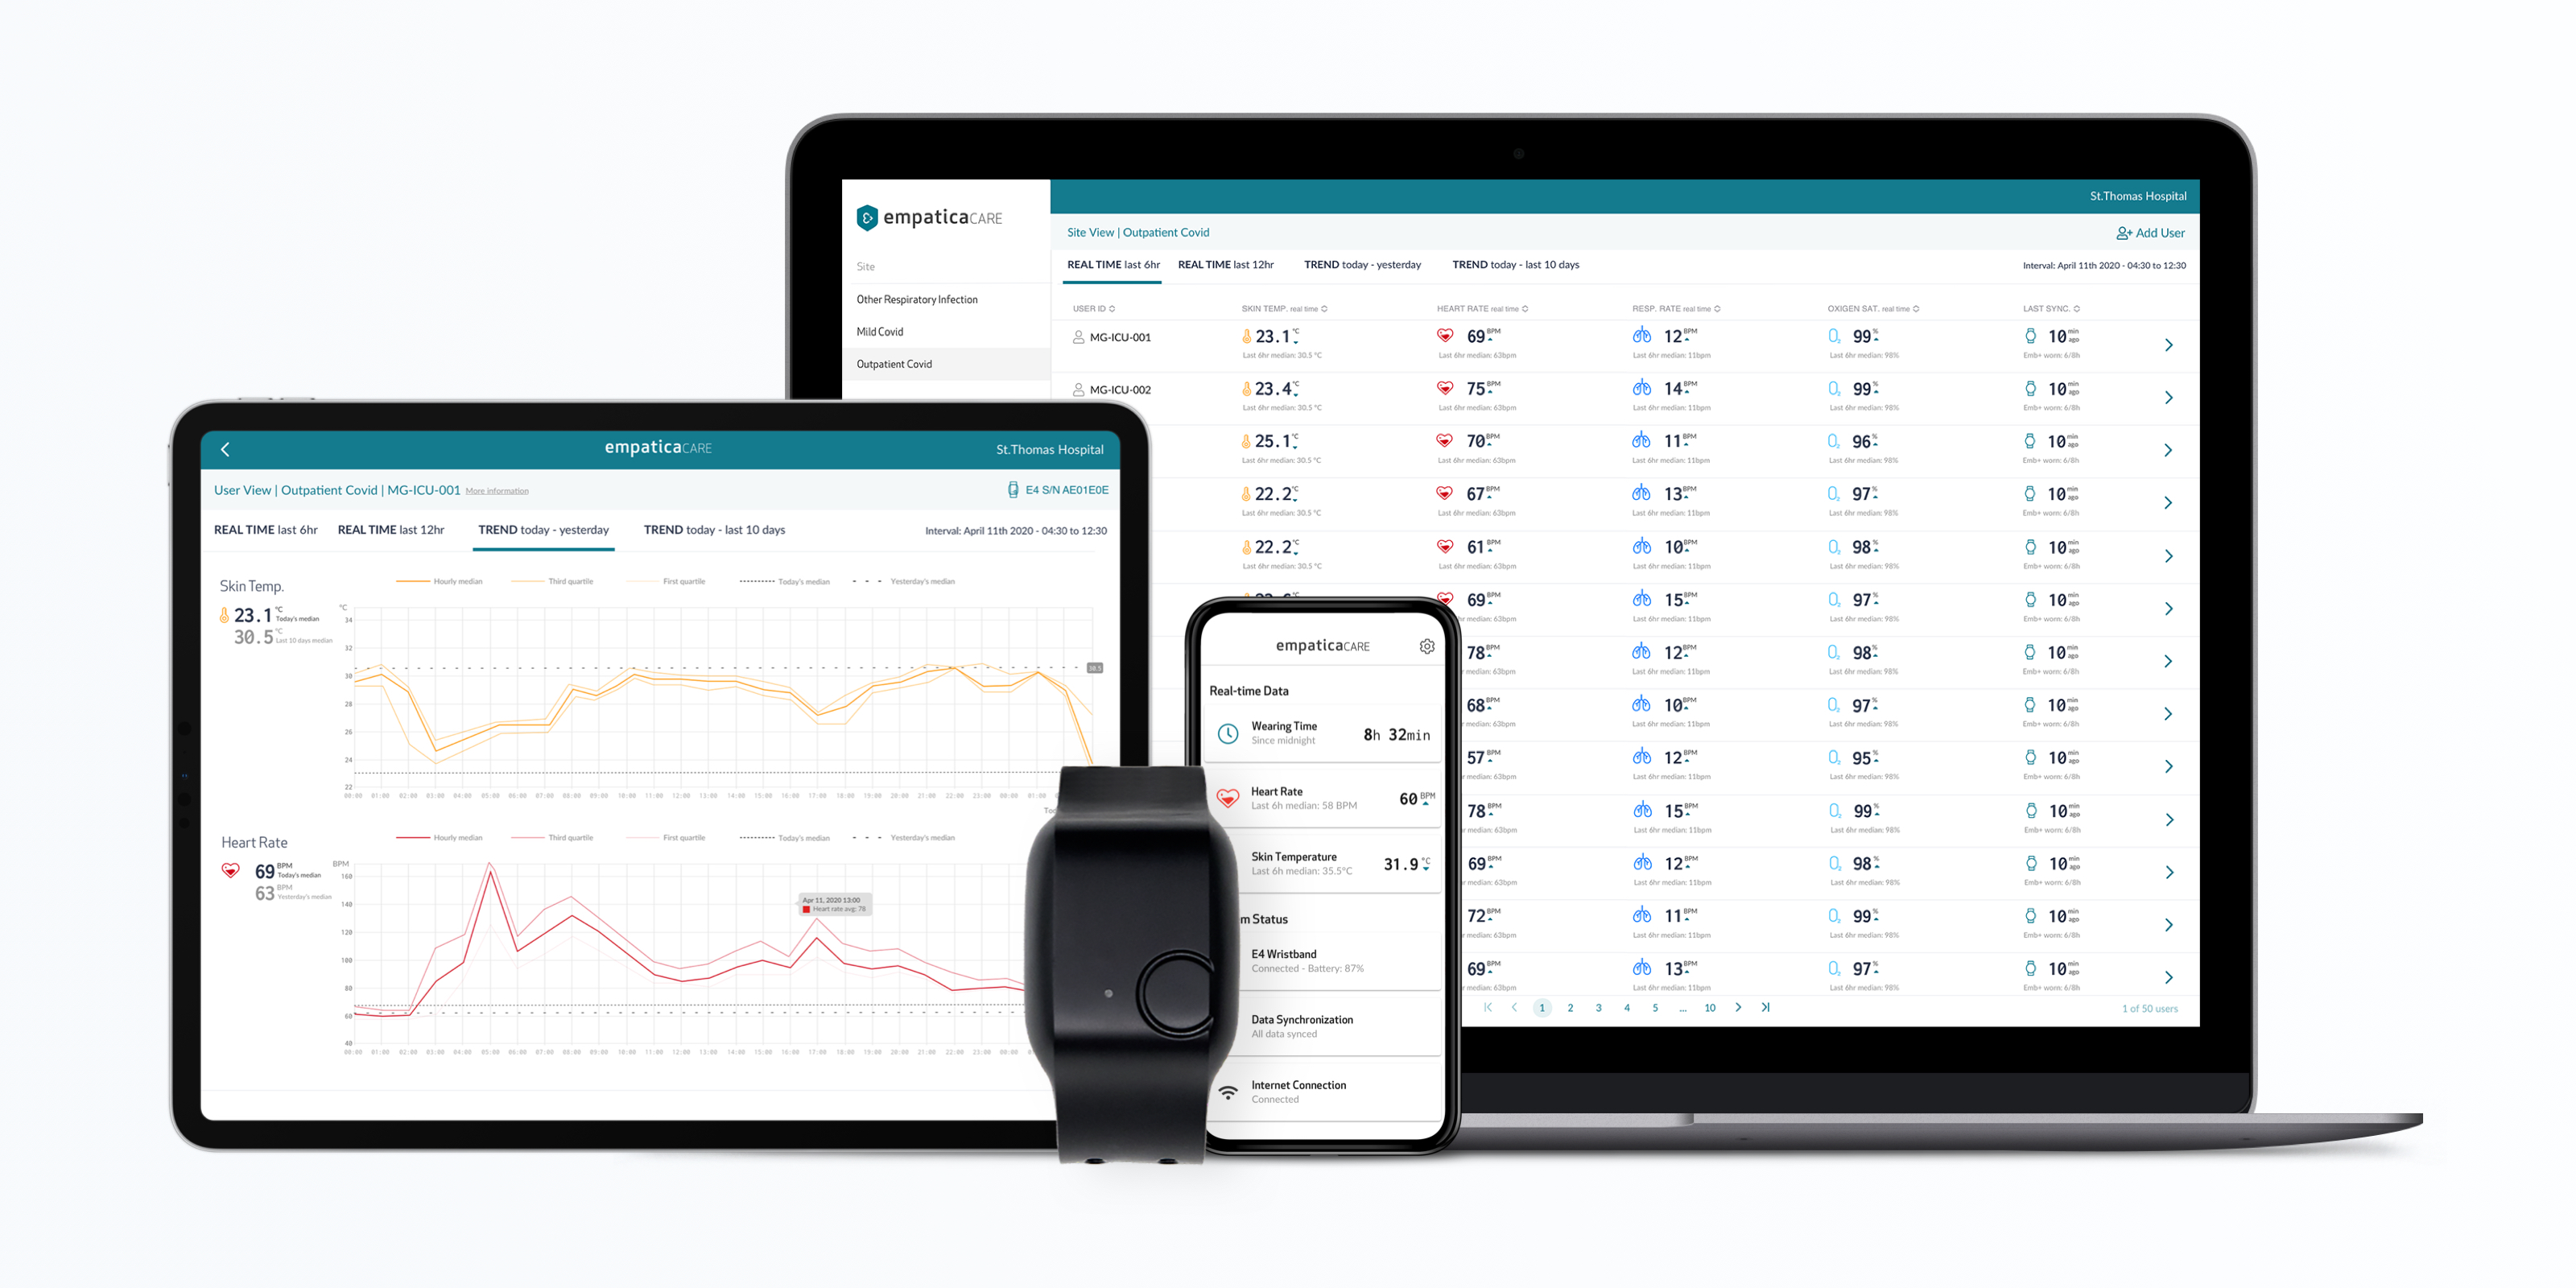 Announcing Empatica Care, a new way to remotely monitor the health of thousands